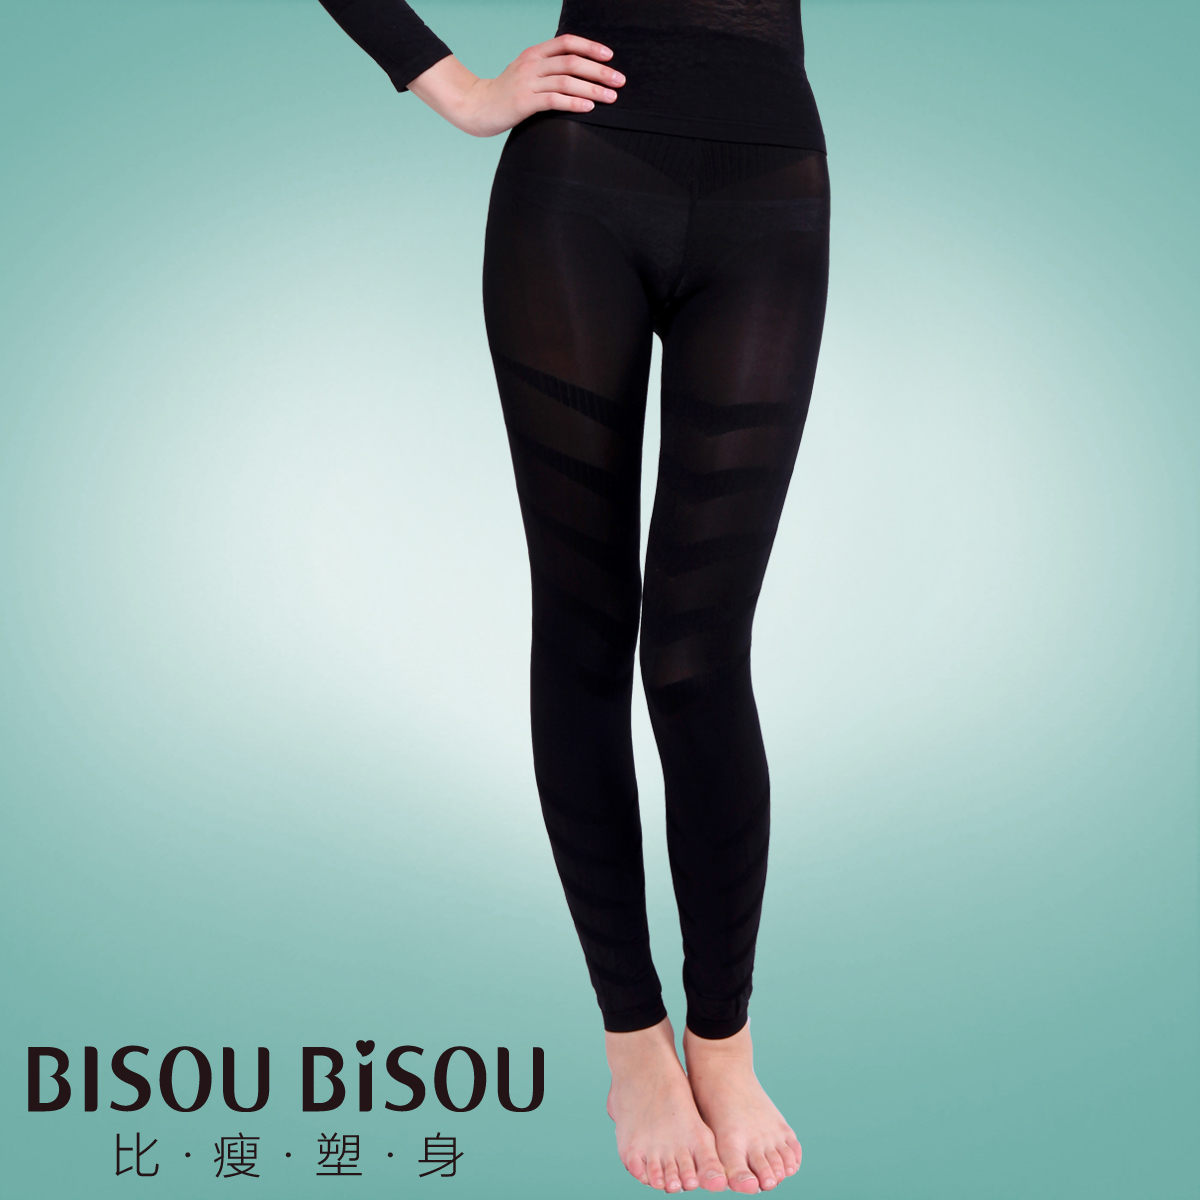 2012 Bisou bisou cycle knitted body shaping abdomen drawing butt-lifting body shaping pants ankle length trousers free shipping